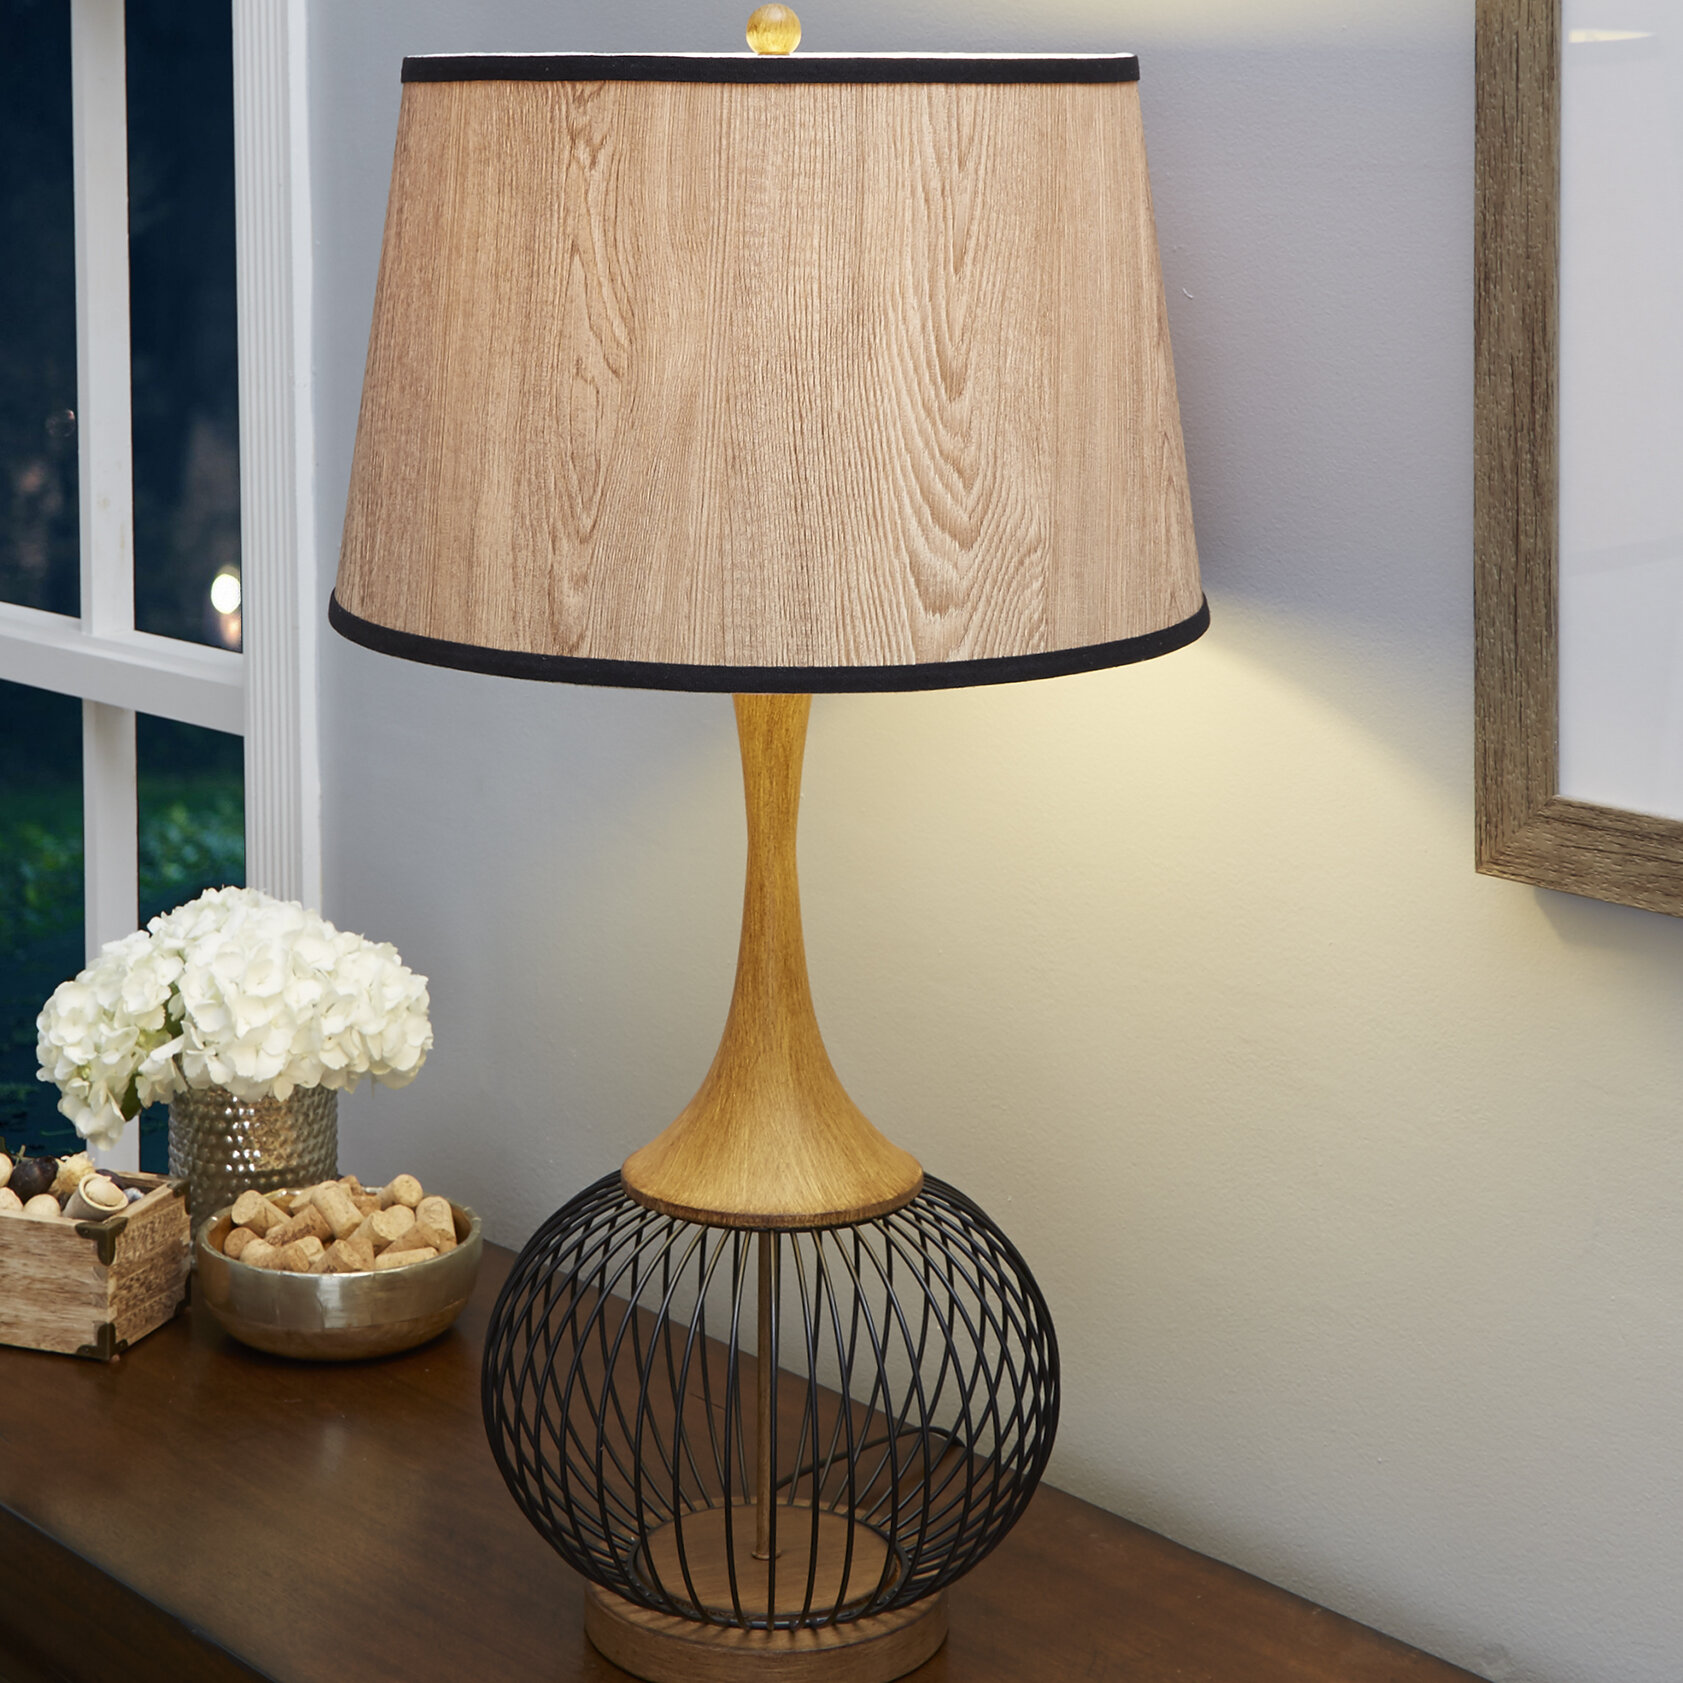 Bungalow rose rishi 23 table lamp with metal wire cage and faux bungalow rose rishi 23 table lamp with metal wire cage and faux wood shade wayfair keyboard keysfo Image collections